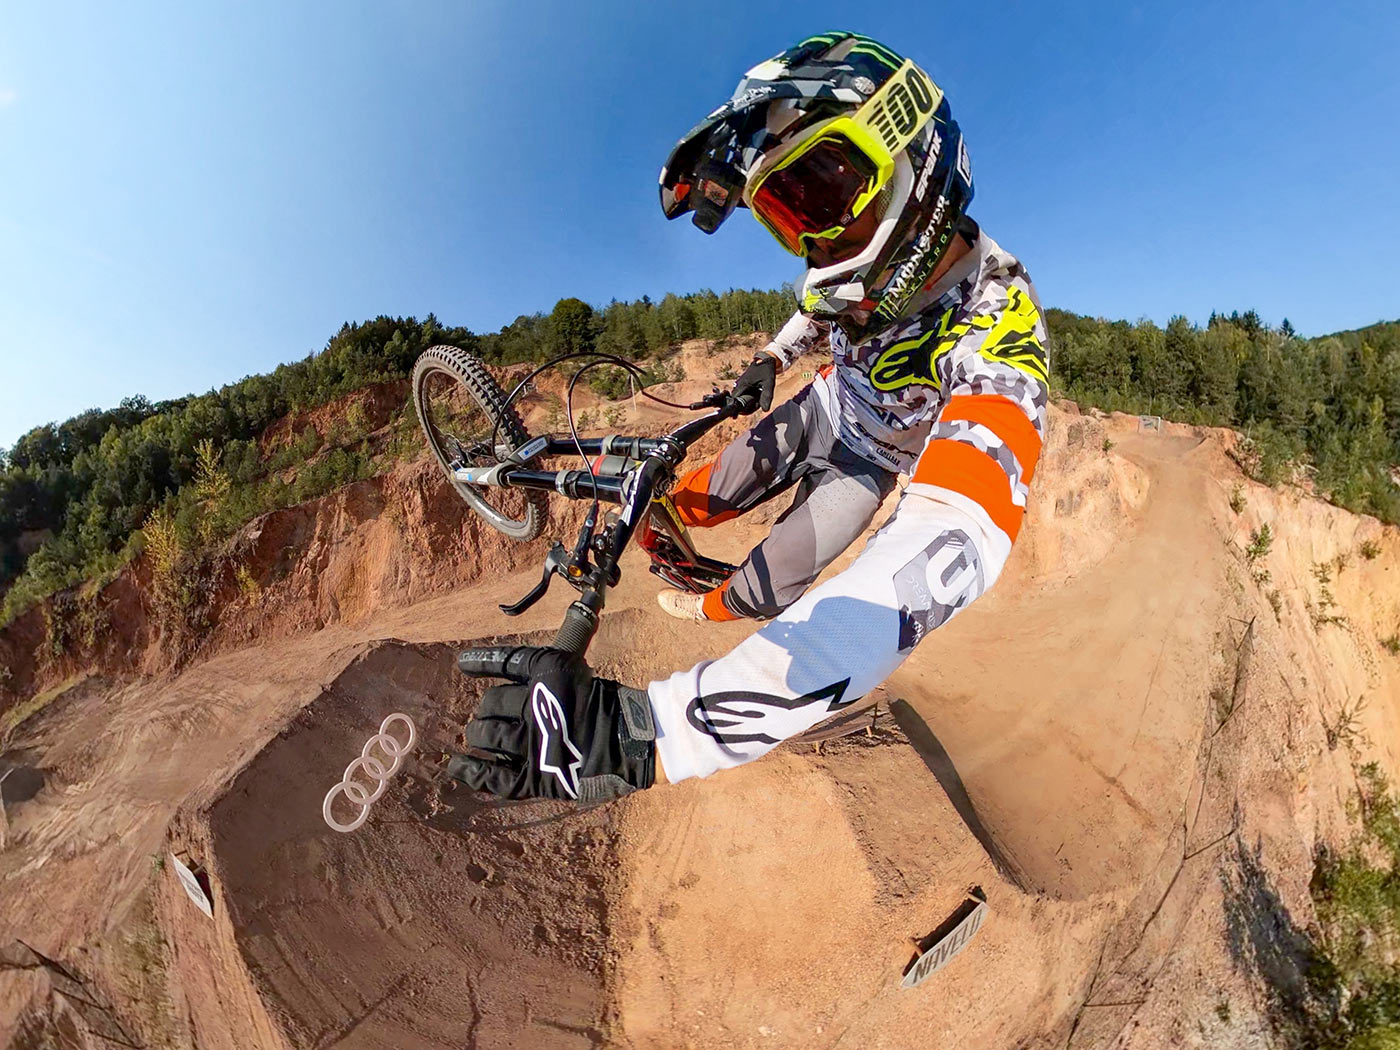 ultrawide camera angle of mountain biker using the max lens mod on the new gopro hero 10 action camera